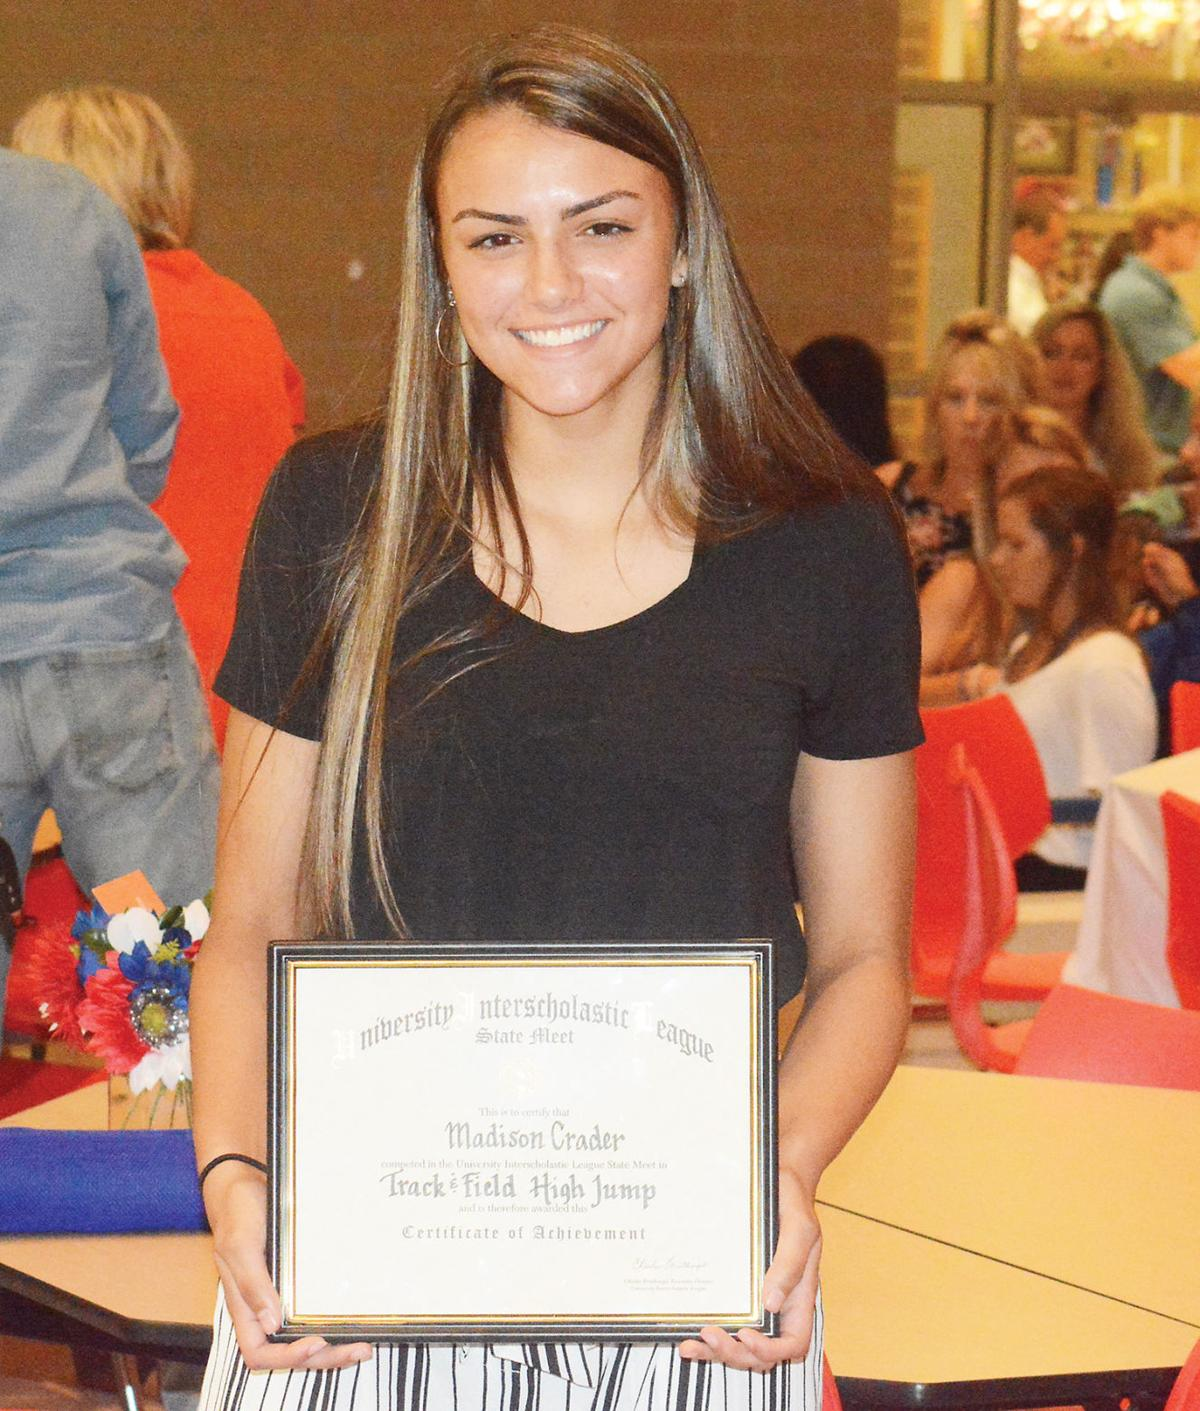 Madison Crader shows off state certificate